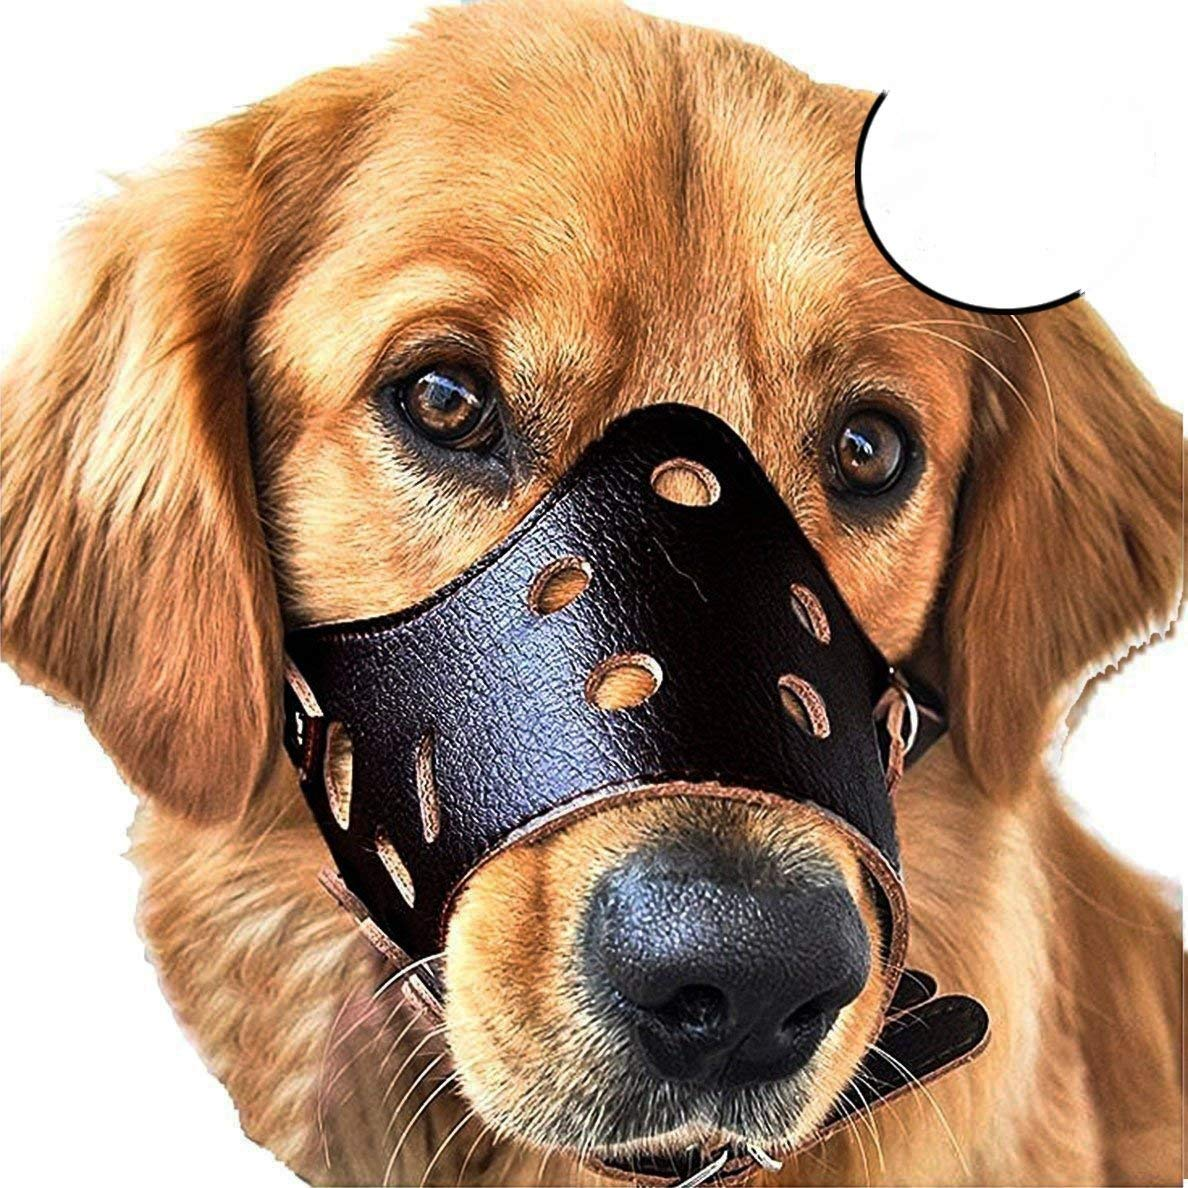 Black Small Black Small Adjustable Anti-Biting Dog Muzzle Leather Breathable Safety Pet Puppy Muzzles Mask for mall Medium Large Dogs Outdoor,Black,S